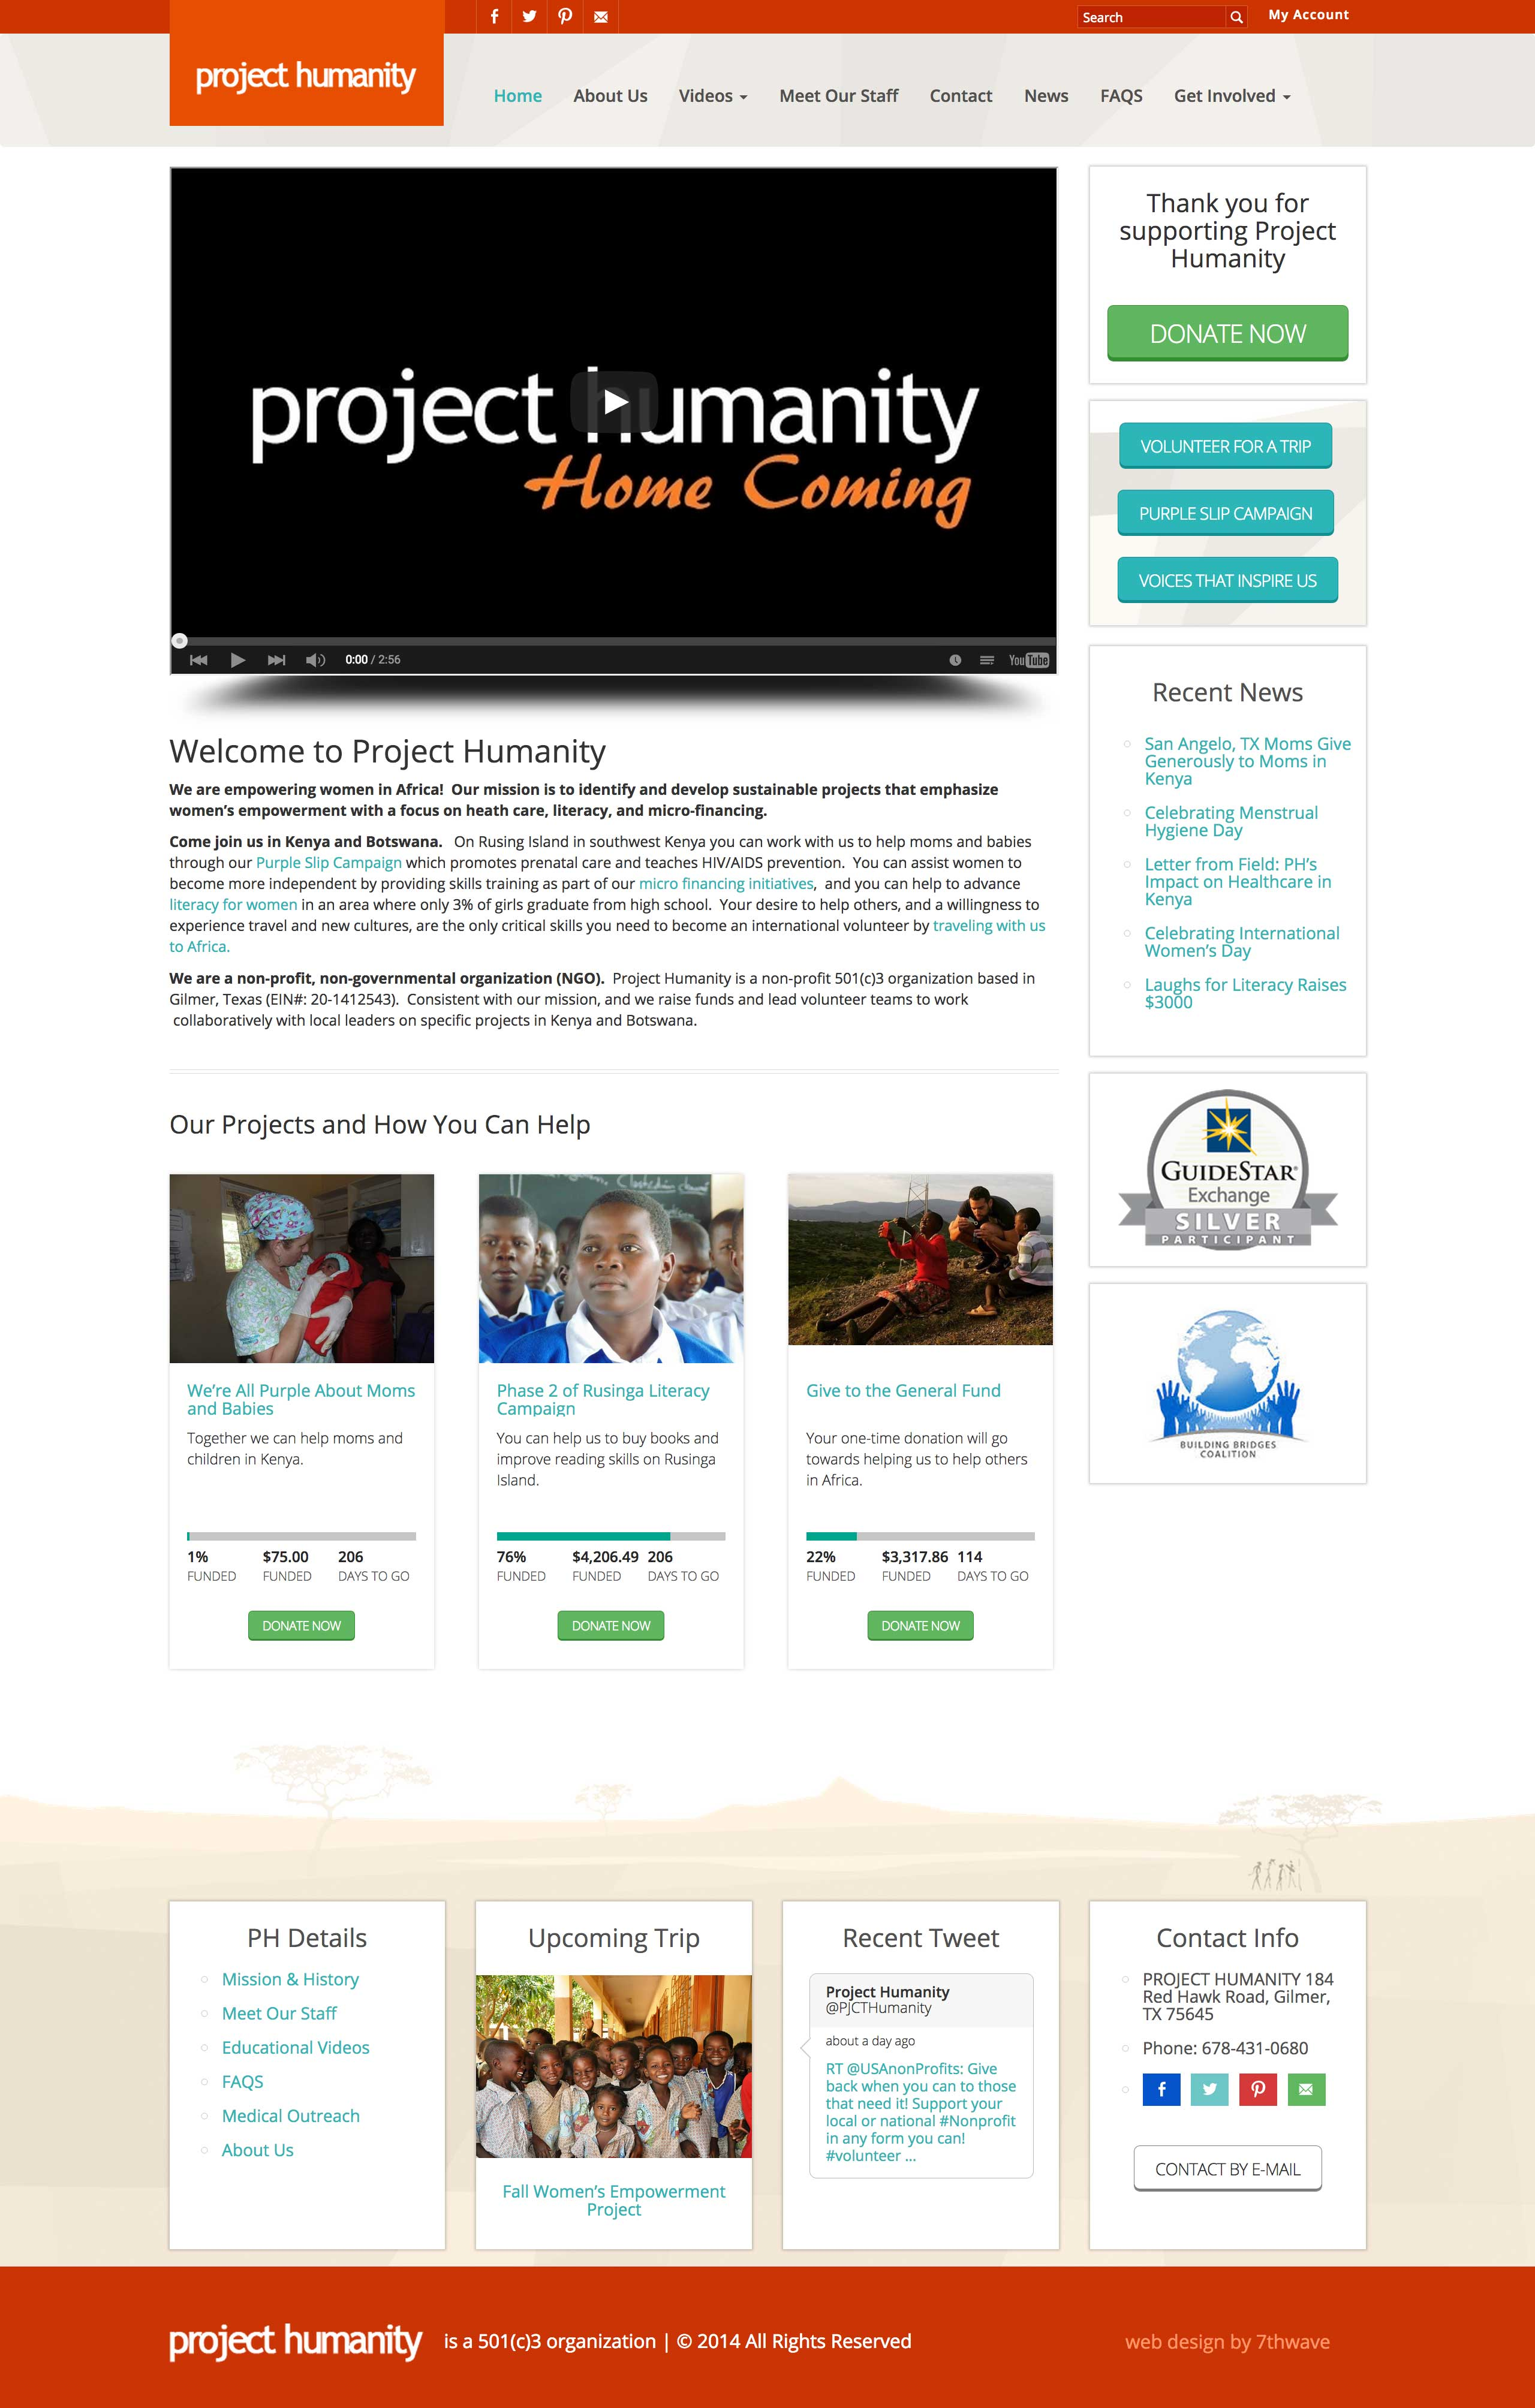 projecthumanity-web-design-home